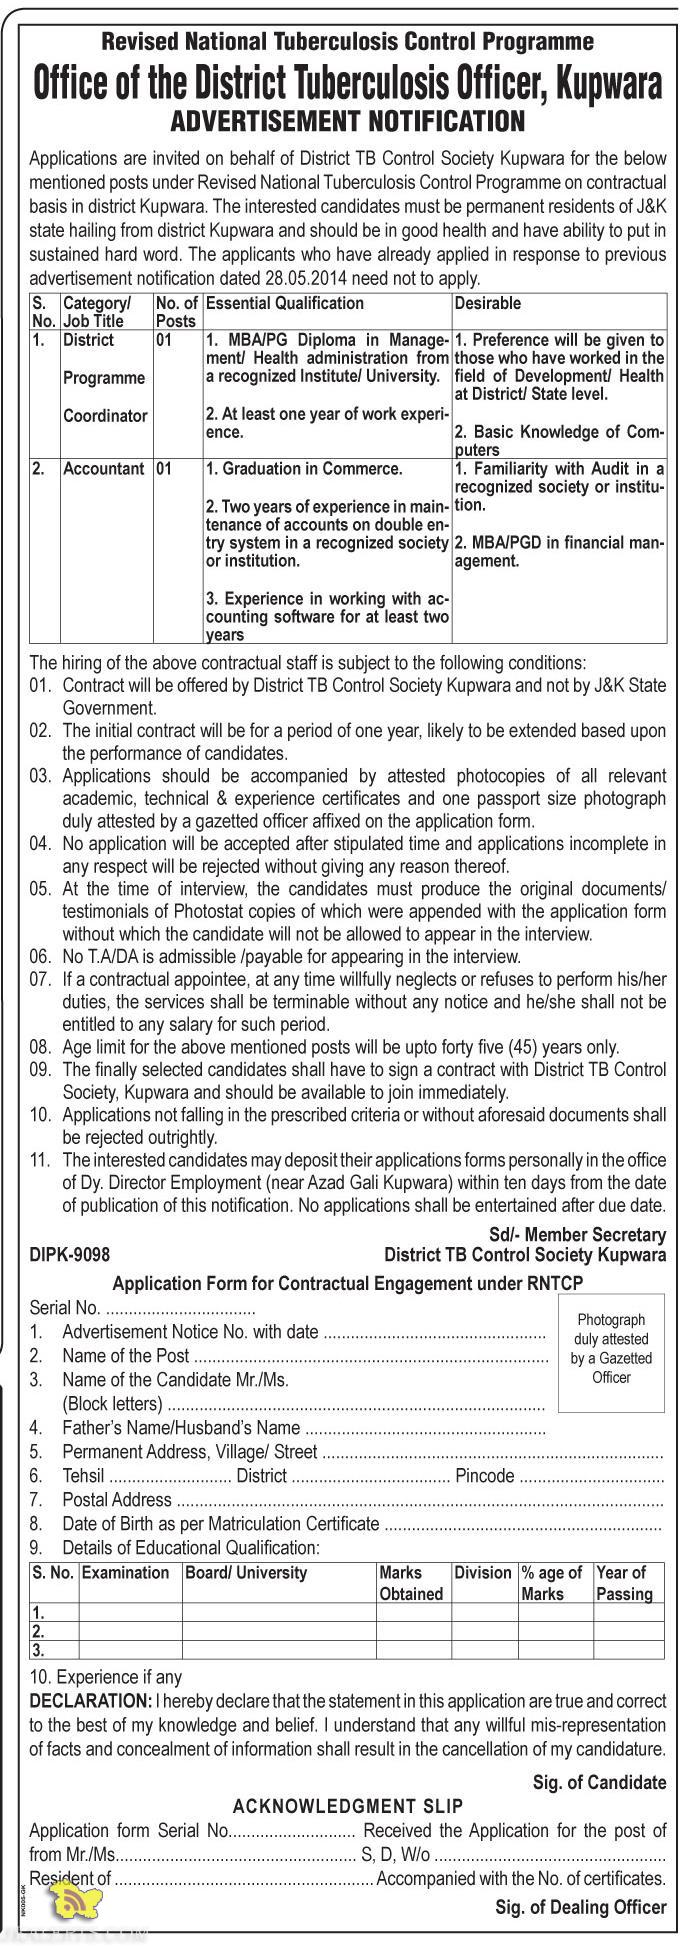 District Programme Coordinator, Accountant Jobs in District TB Control Society